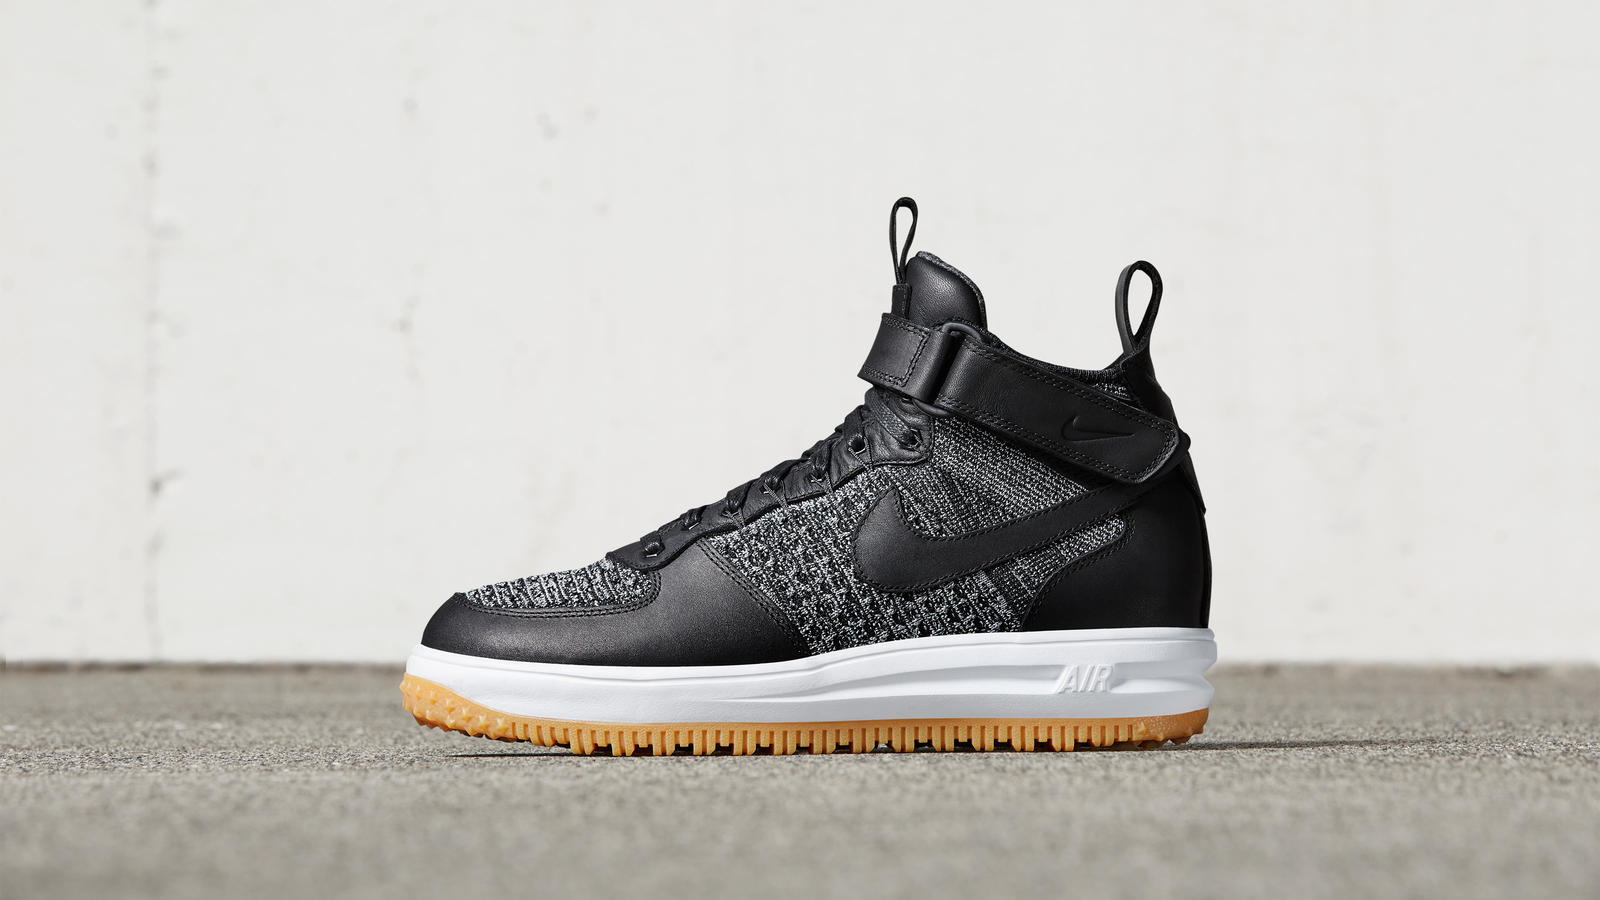 sports shoes 4f0f6 13197 Nike Lunar Force 1 Flyknit Workboot